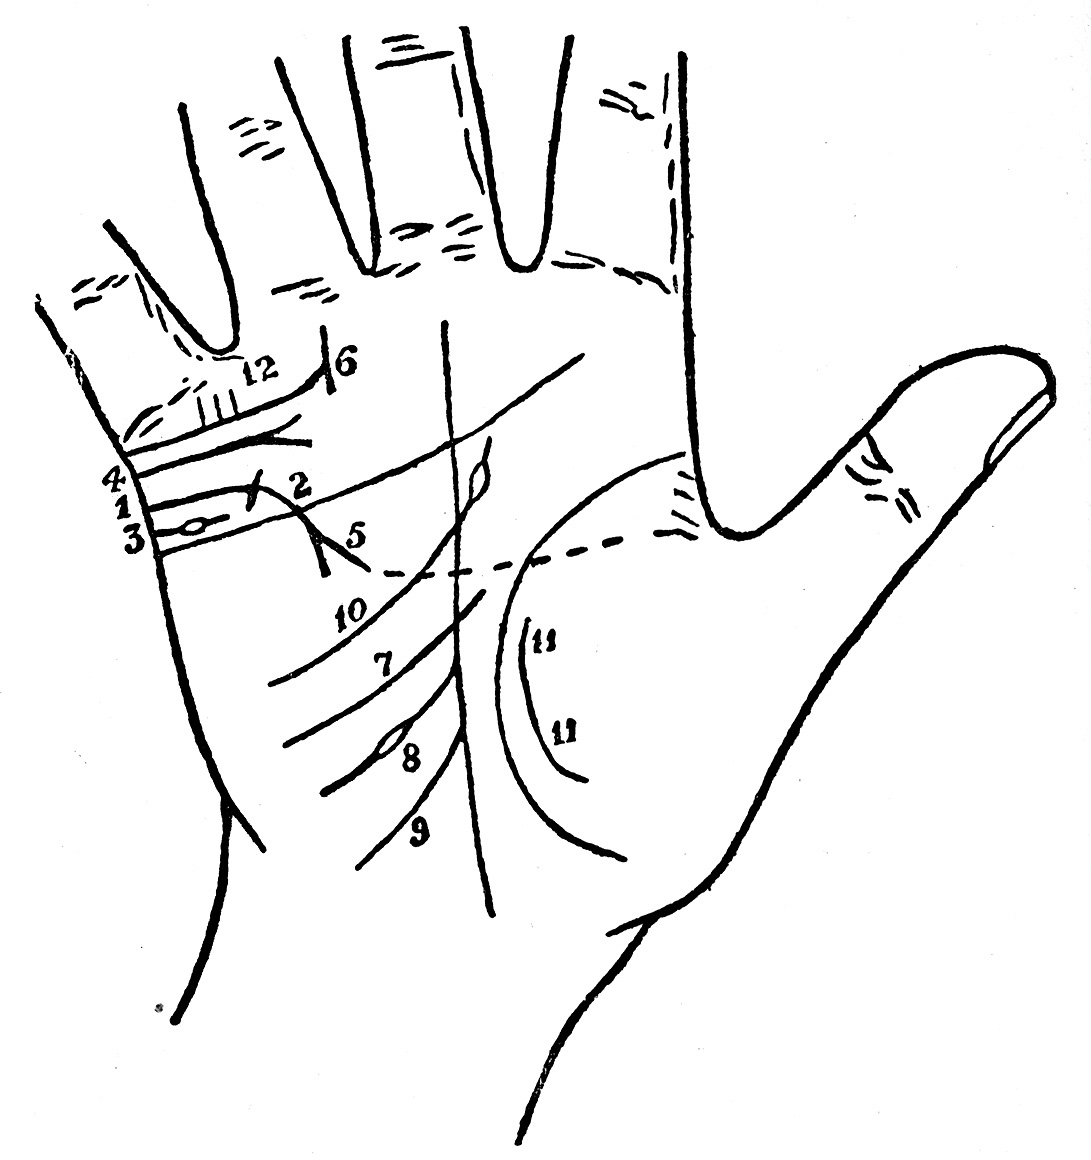 The project gutenberg ebook of palmistry for all by cheiro m4hsunfo